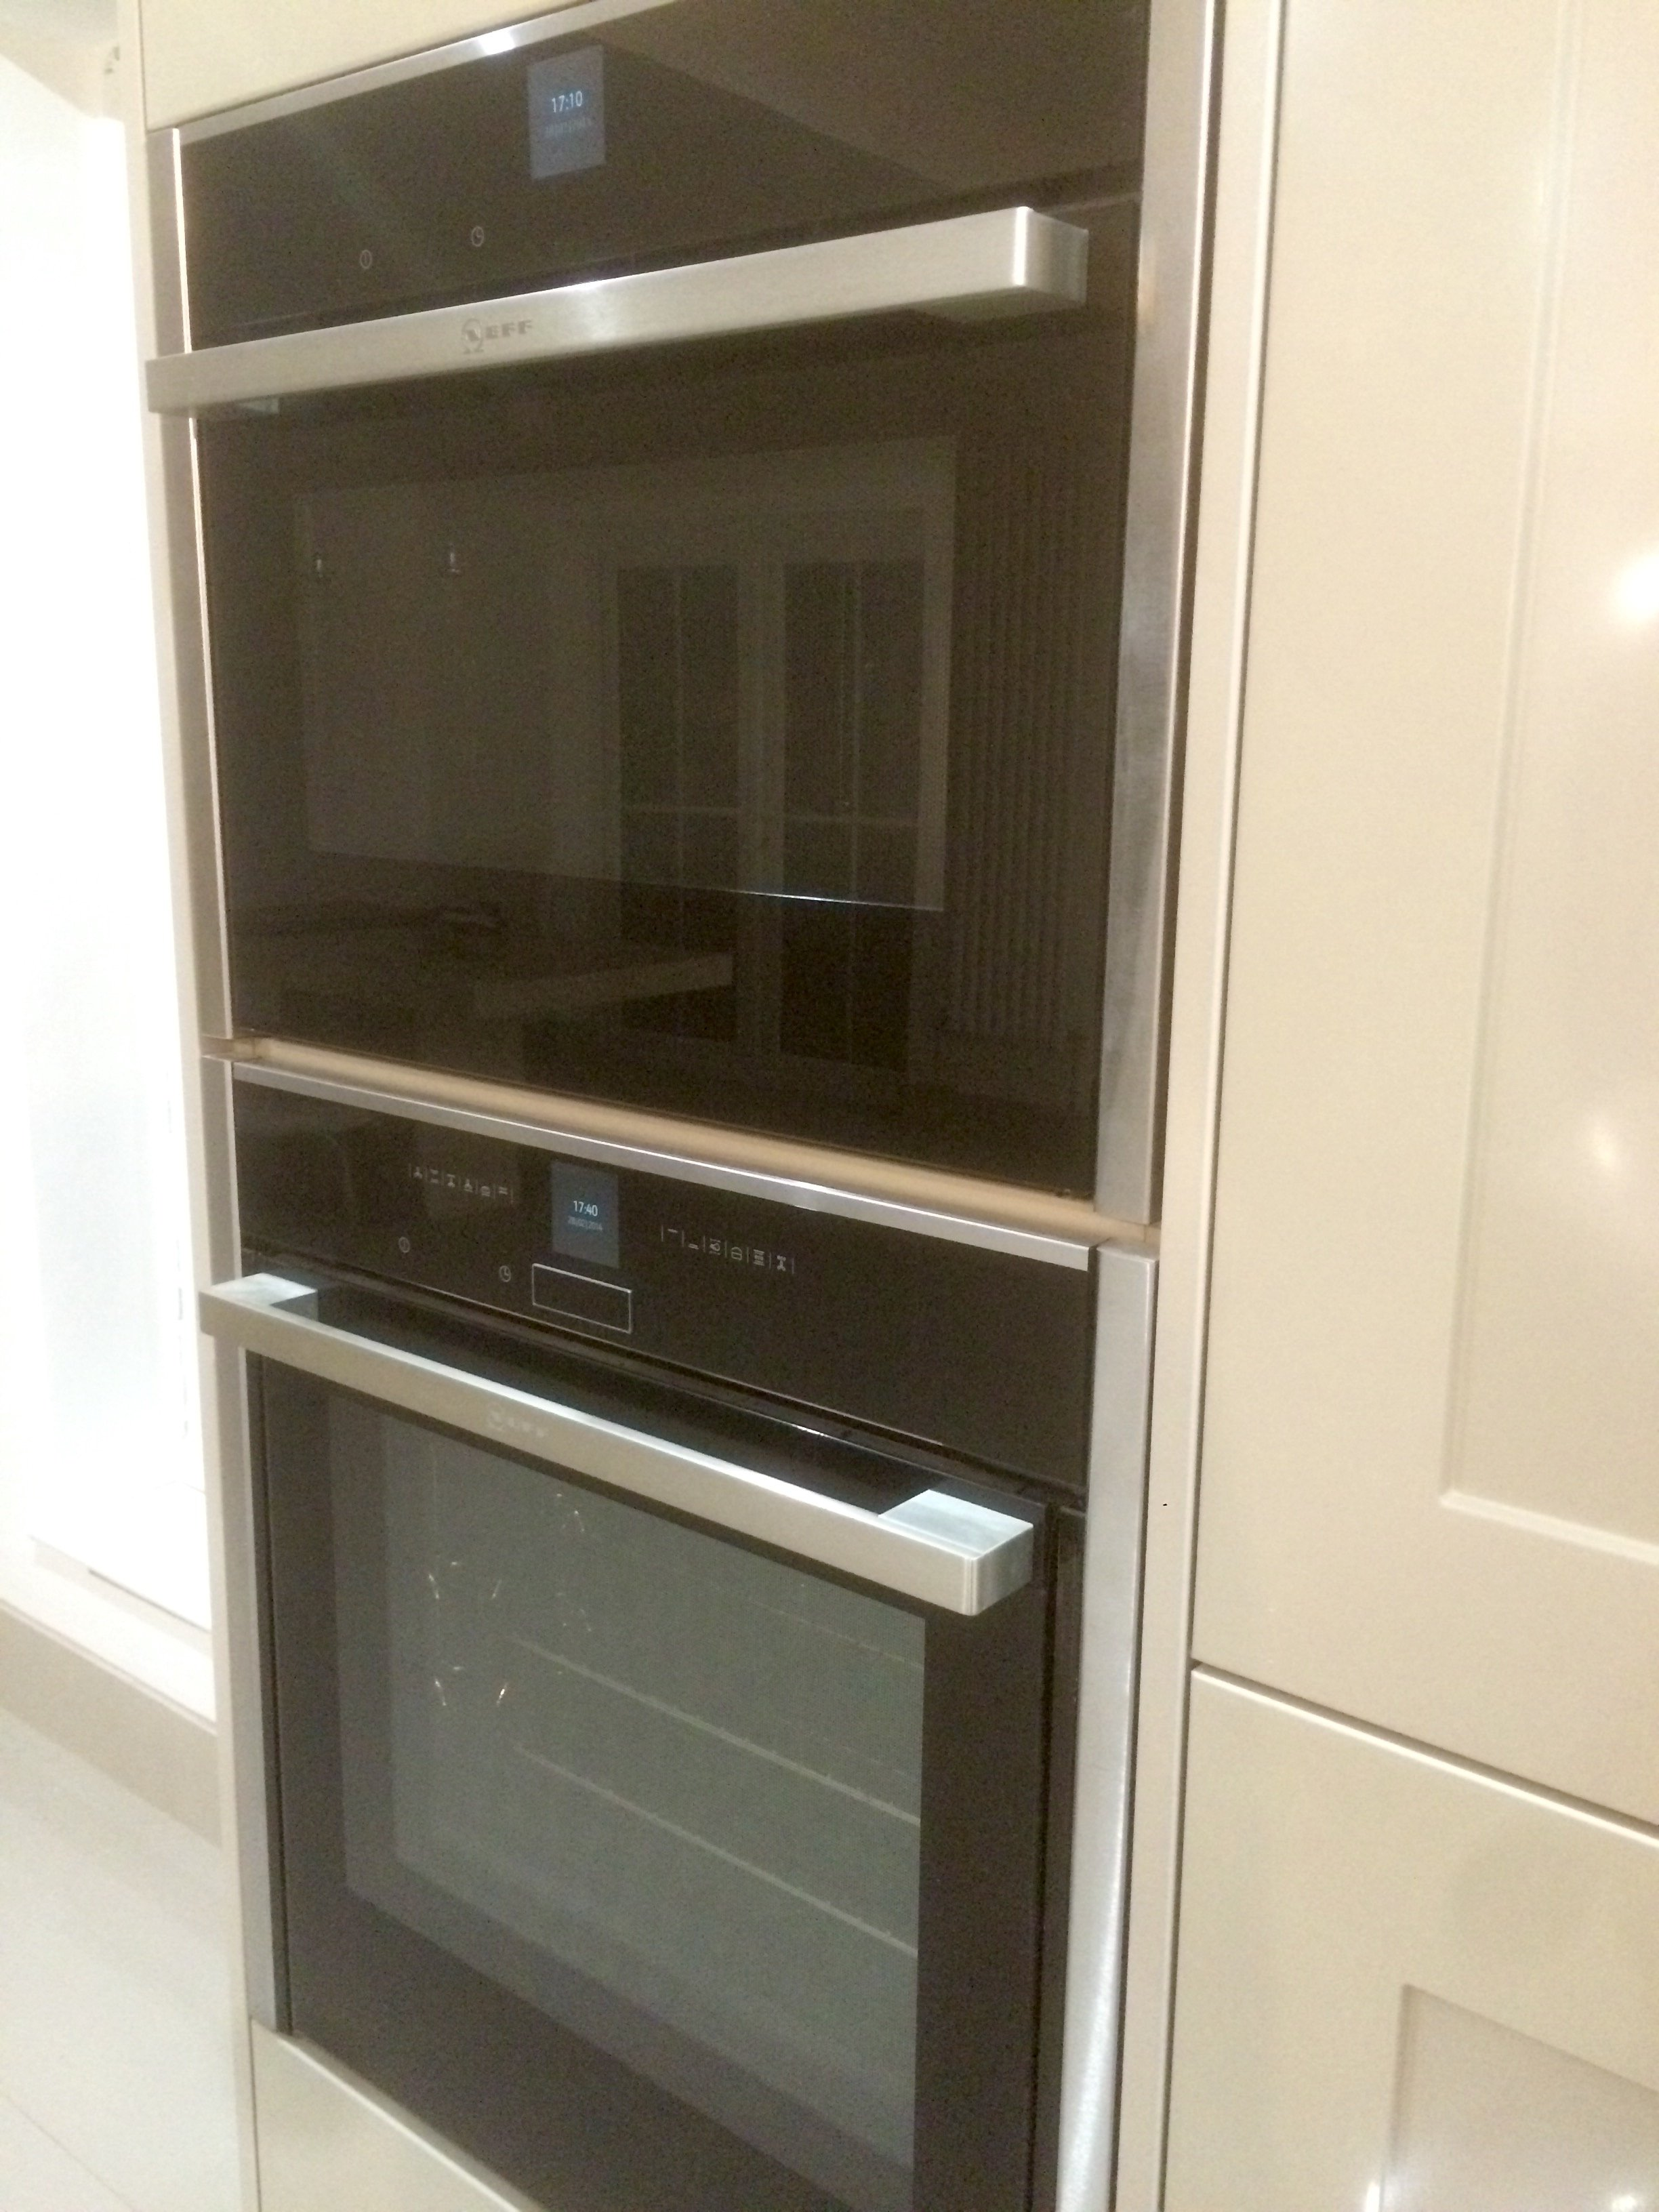 Neff Microwave and Slide 'N' Hide Oven Combi